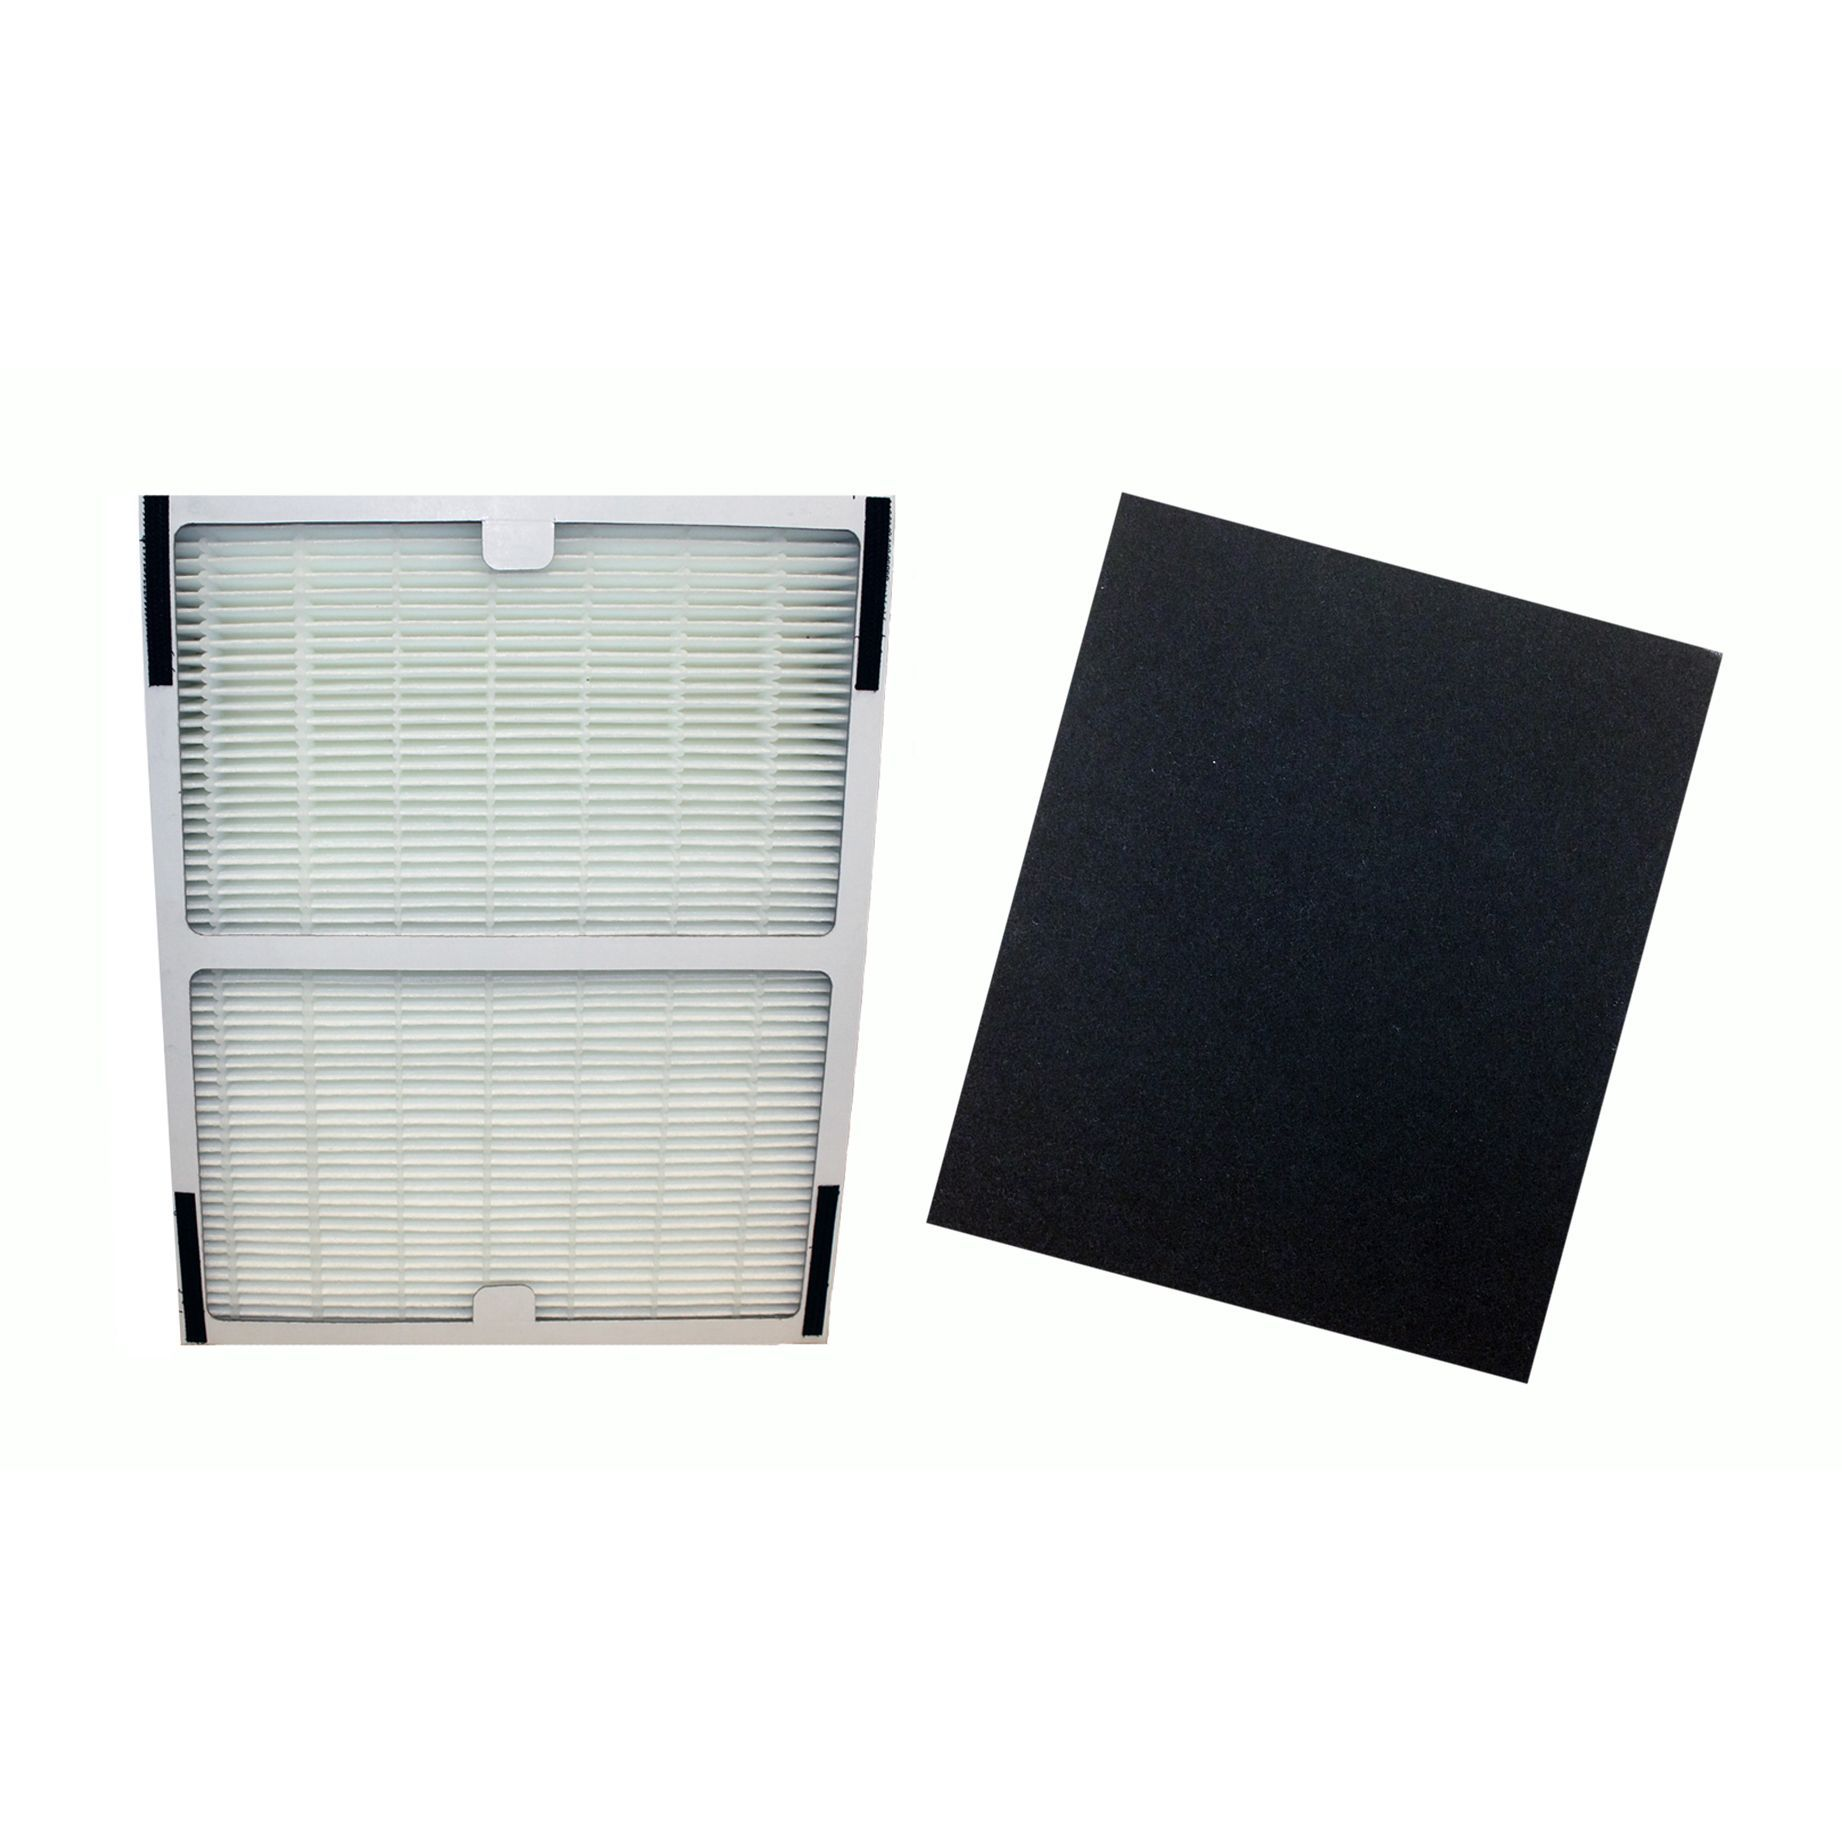 Replacement A HEPA Style Air Filter & Carbon Filter, Fits